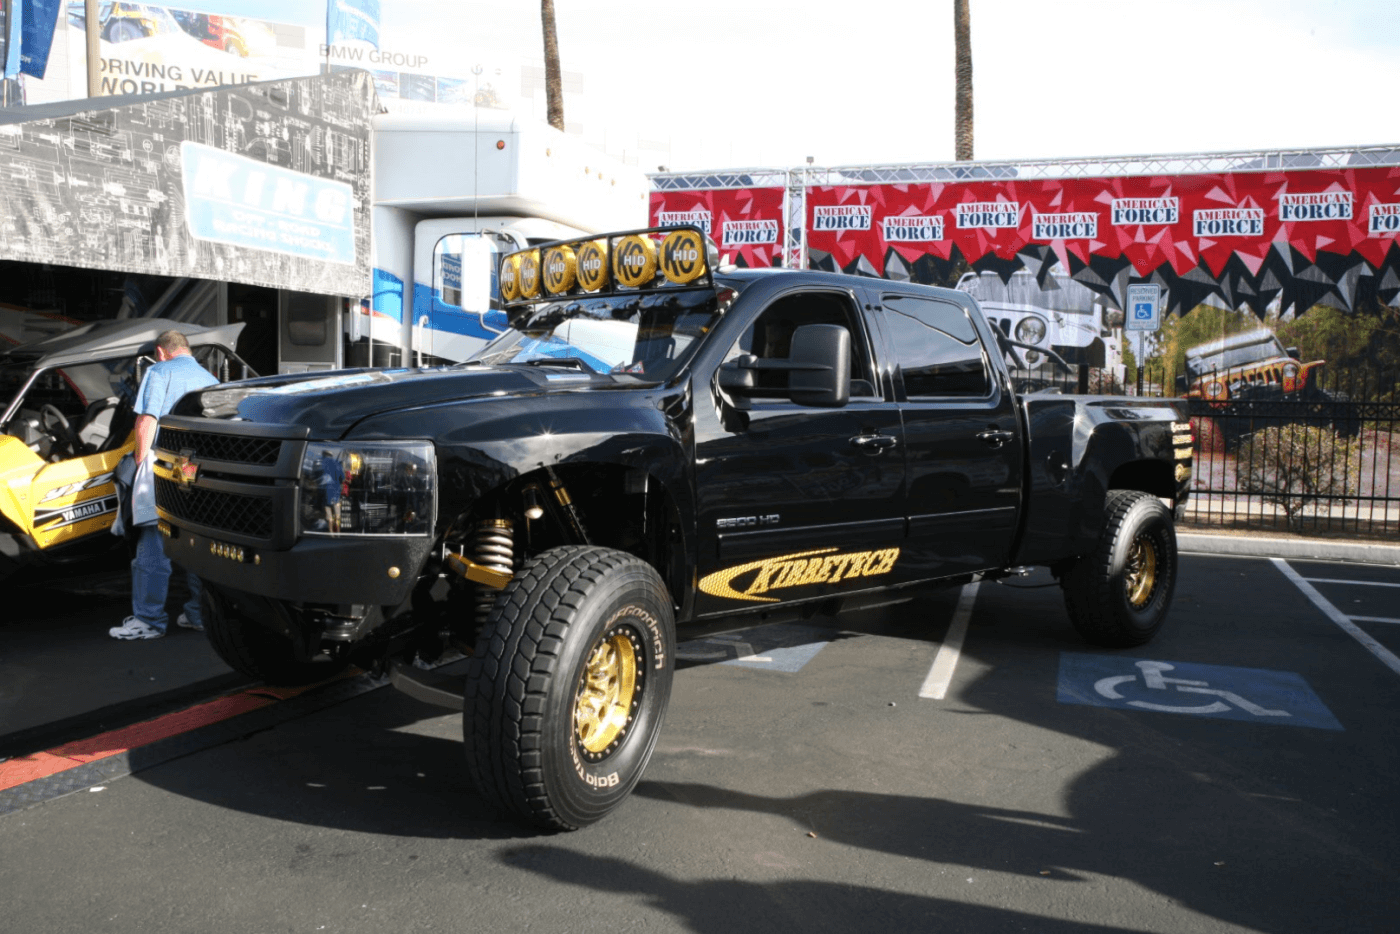 The BugattiMax is one clean and high-end Duramax-powered off-road Pre-Runner built by Kibbetech in Newbury Park, California. And it's for sale people!